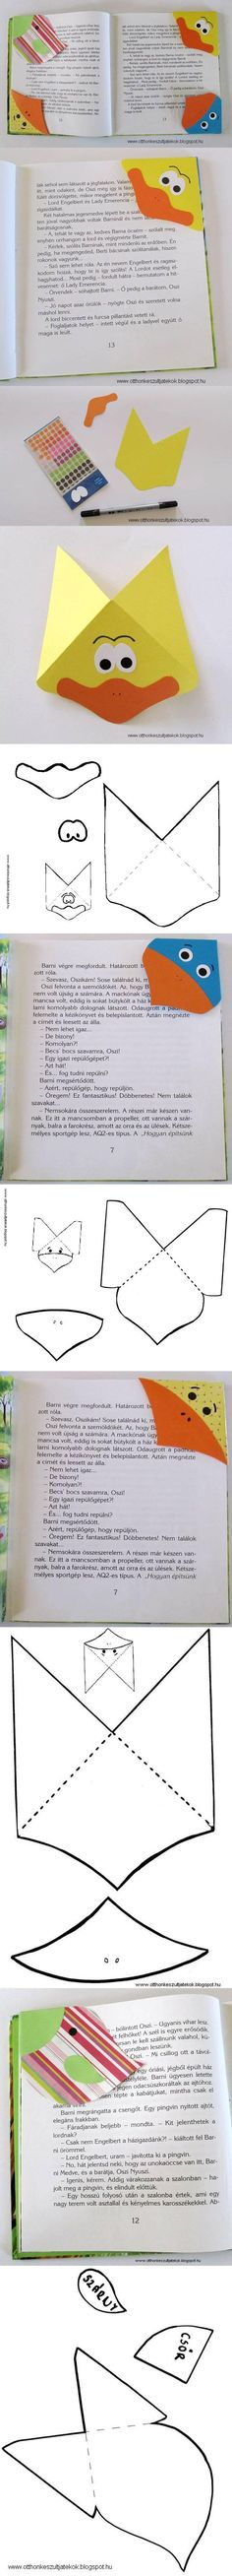 FREE printable bookmark template for kids Felt Crafts, Diy And Crafts, Arts And Crafts, Paper Crafts, Diy Bookmarks, Corner Bookmarks, Diy For Kids, Crafts For Kids, Origami